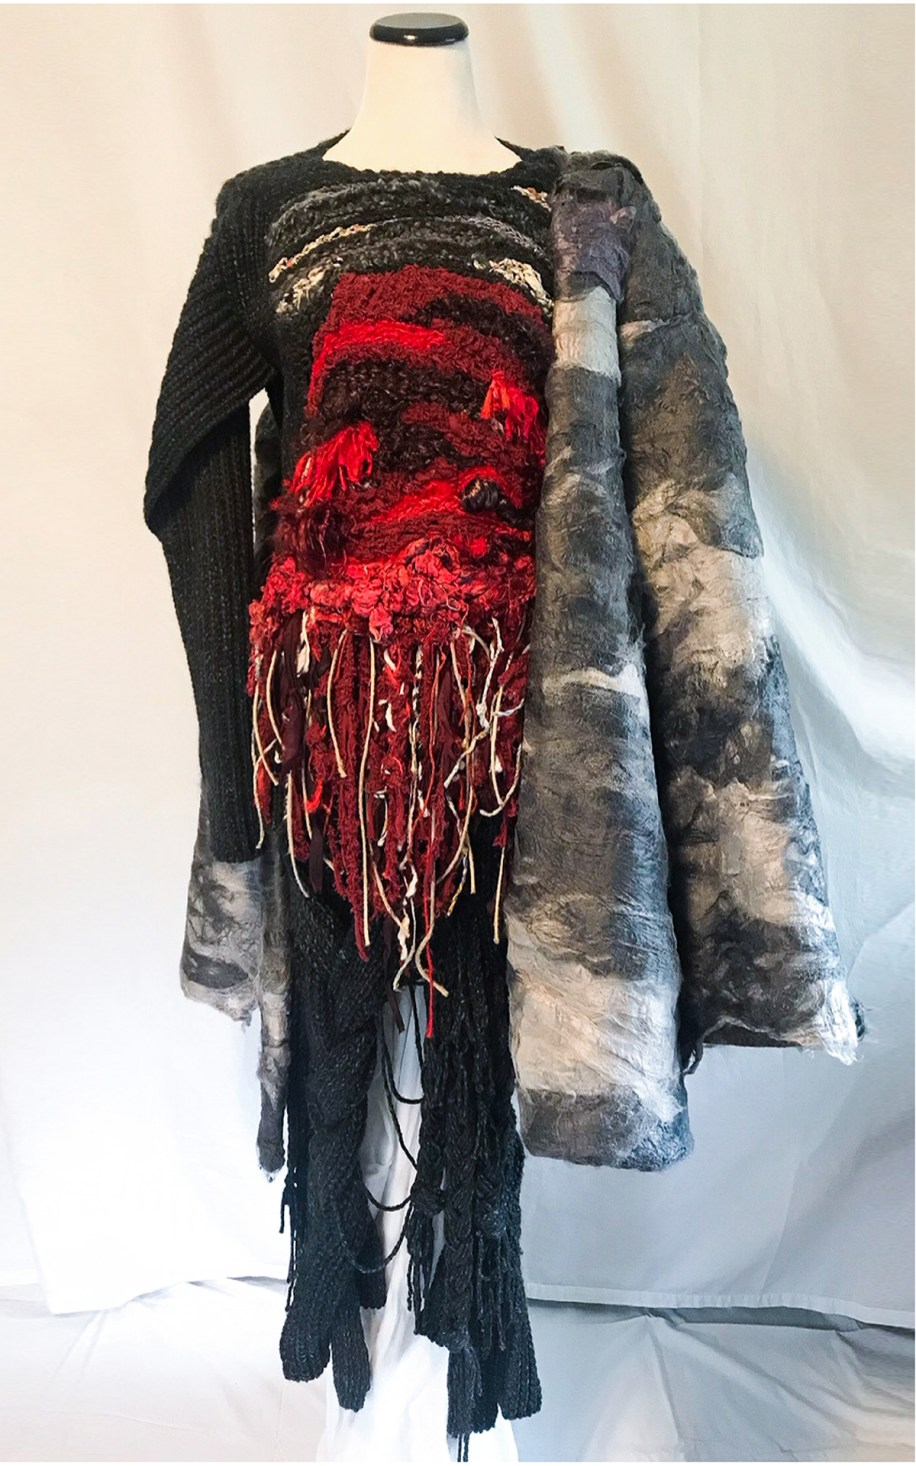 Sculpted Sweater w/ Front Hand Weave, Braided Skirt, and Hand Felted Coat (100% Vegan Knitwear)